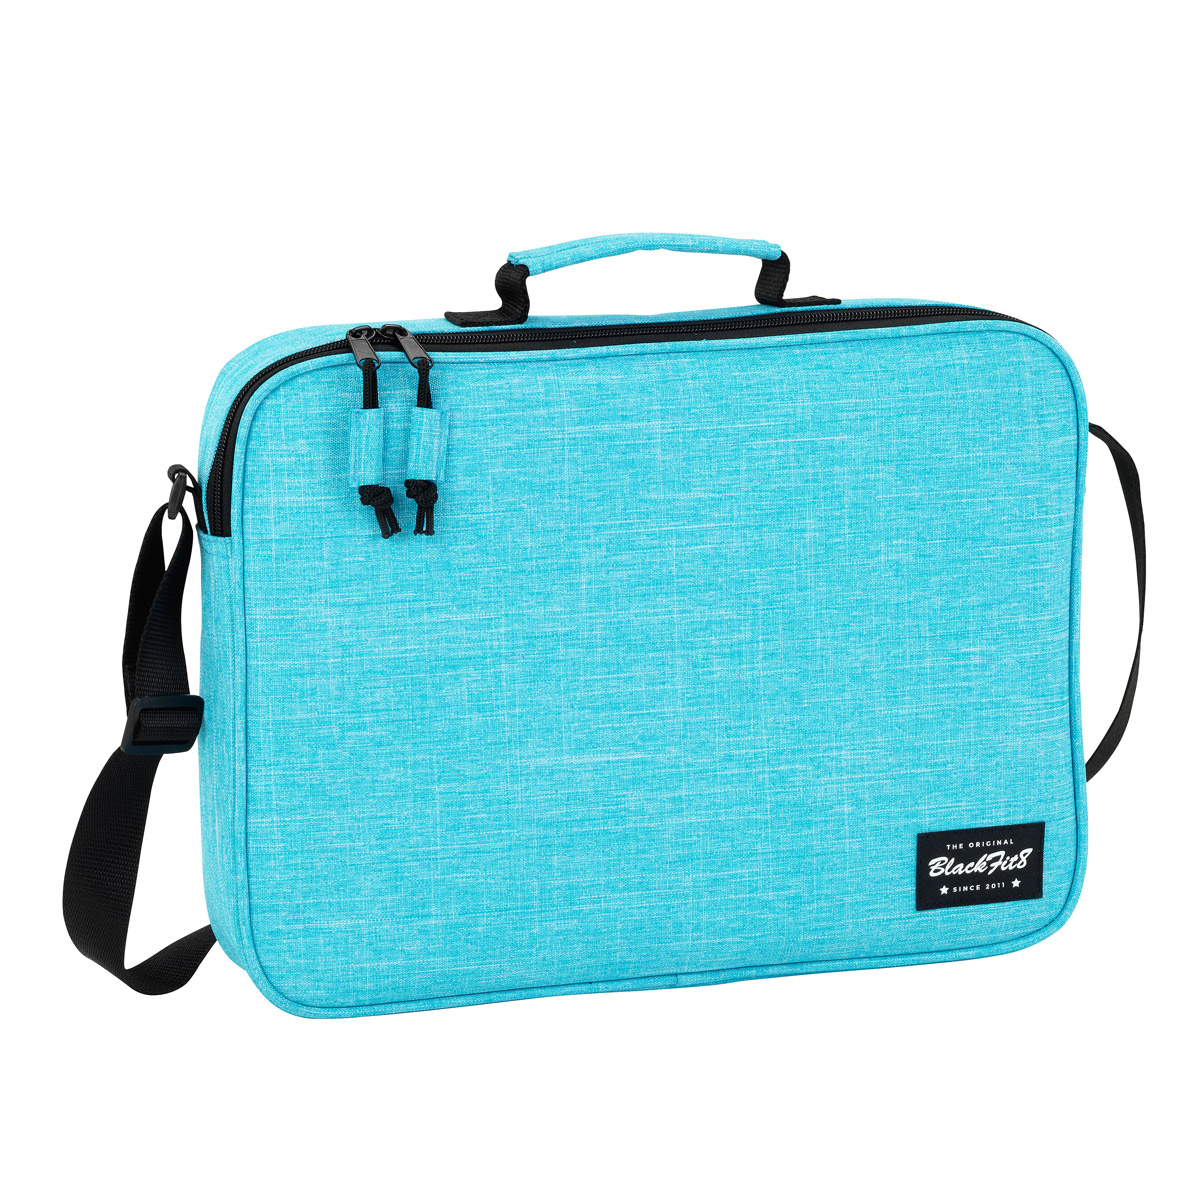 Blackfit8 Ocean Blue Messenger Bag – image 1